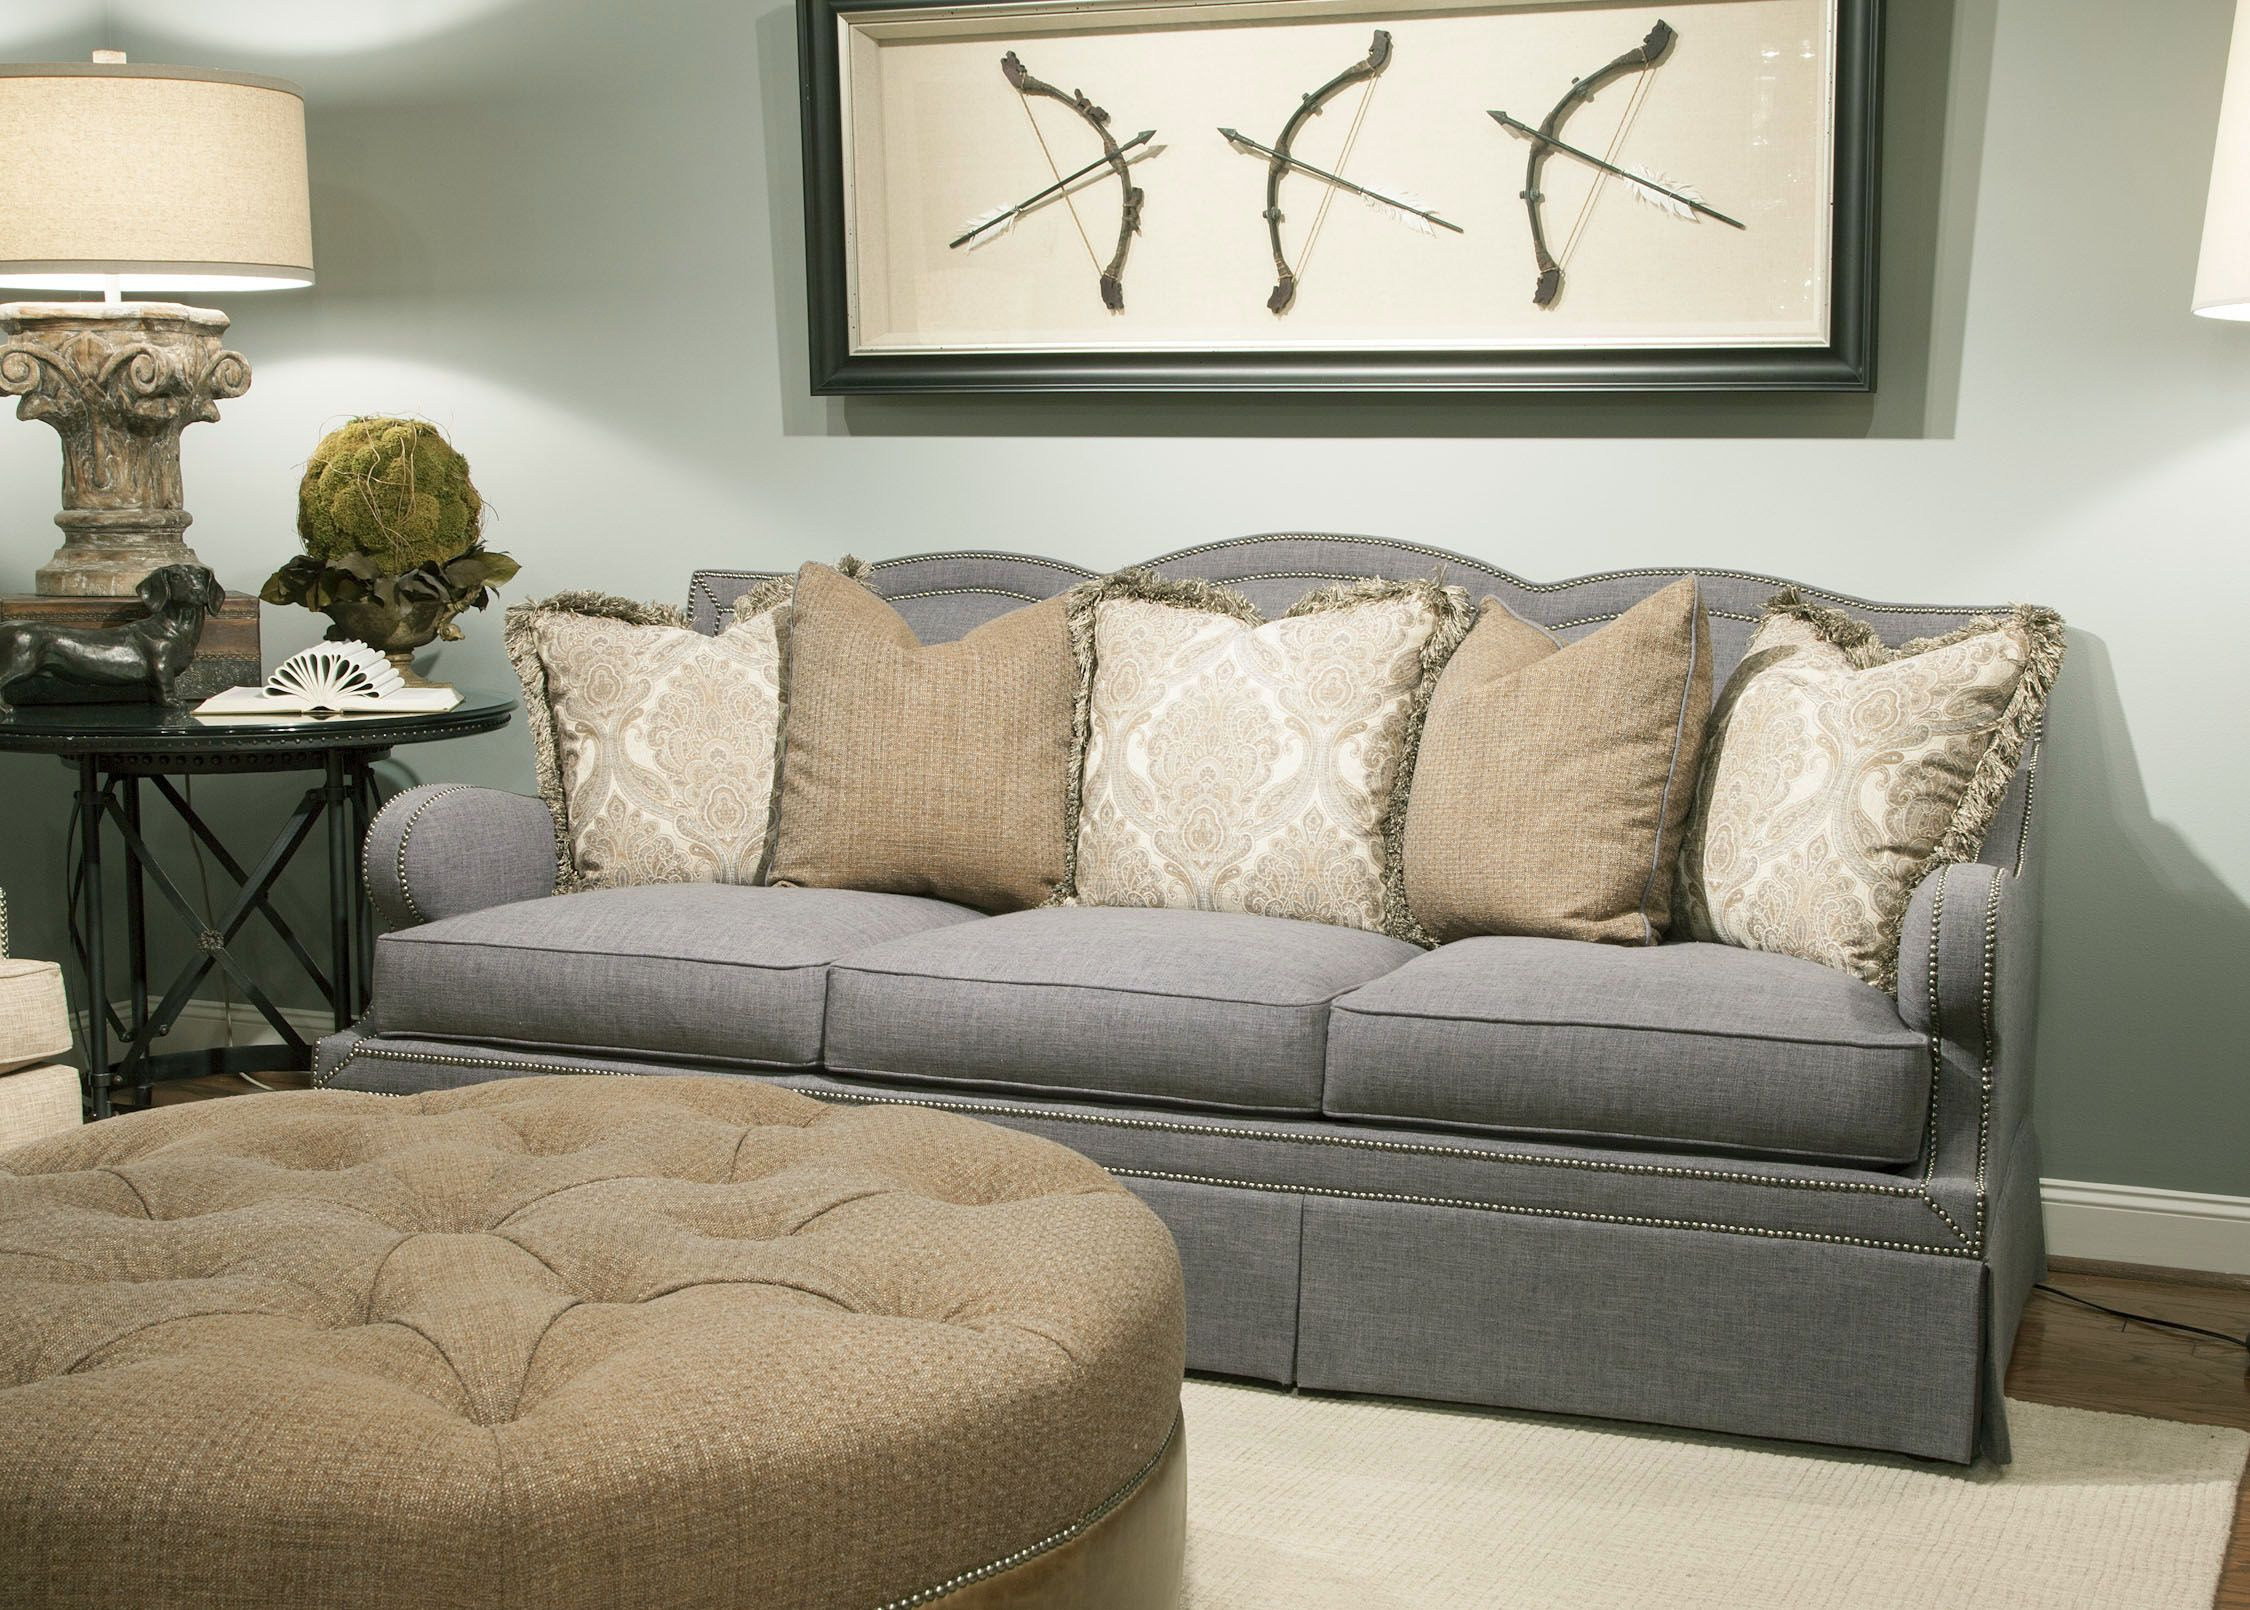 Superbe Fine Hand Crafted Upholstery. Furniture Market ...